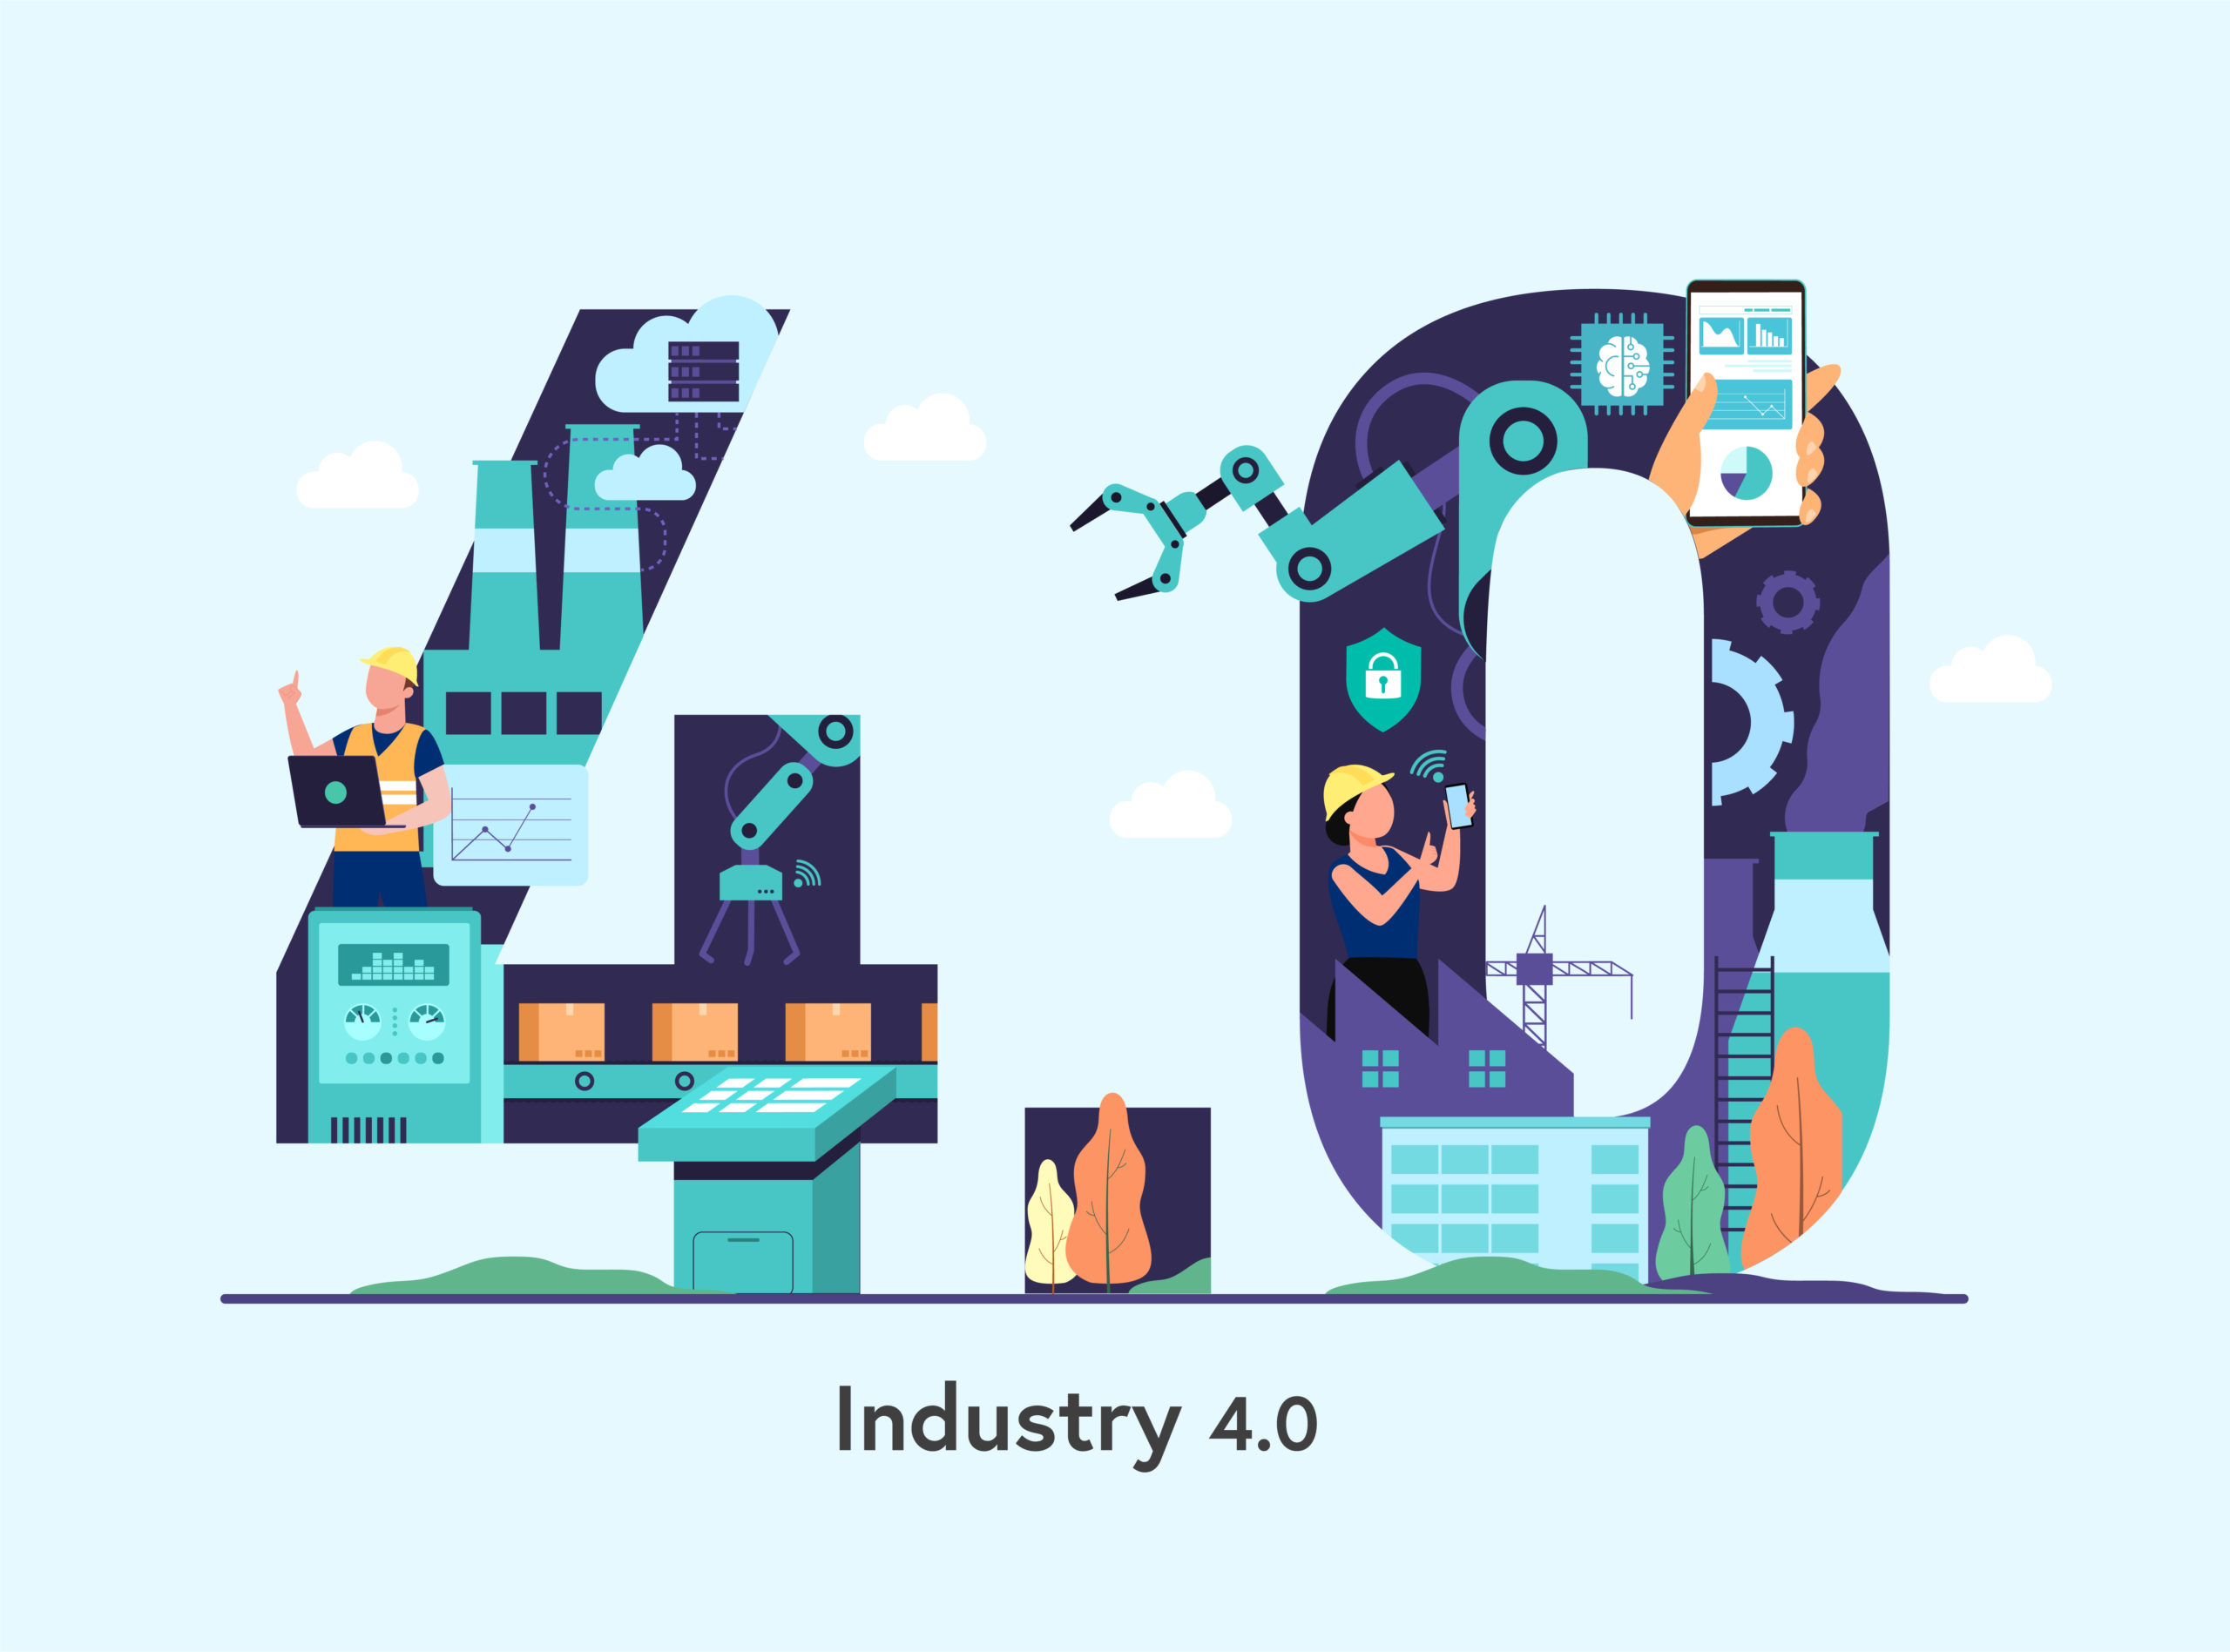 Industry 4.0 banner with robotic arm. Smart industrial numeric